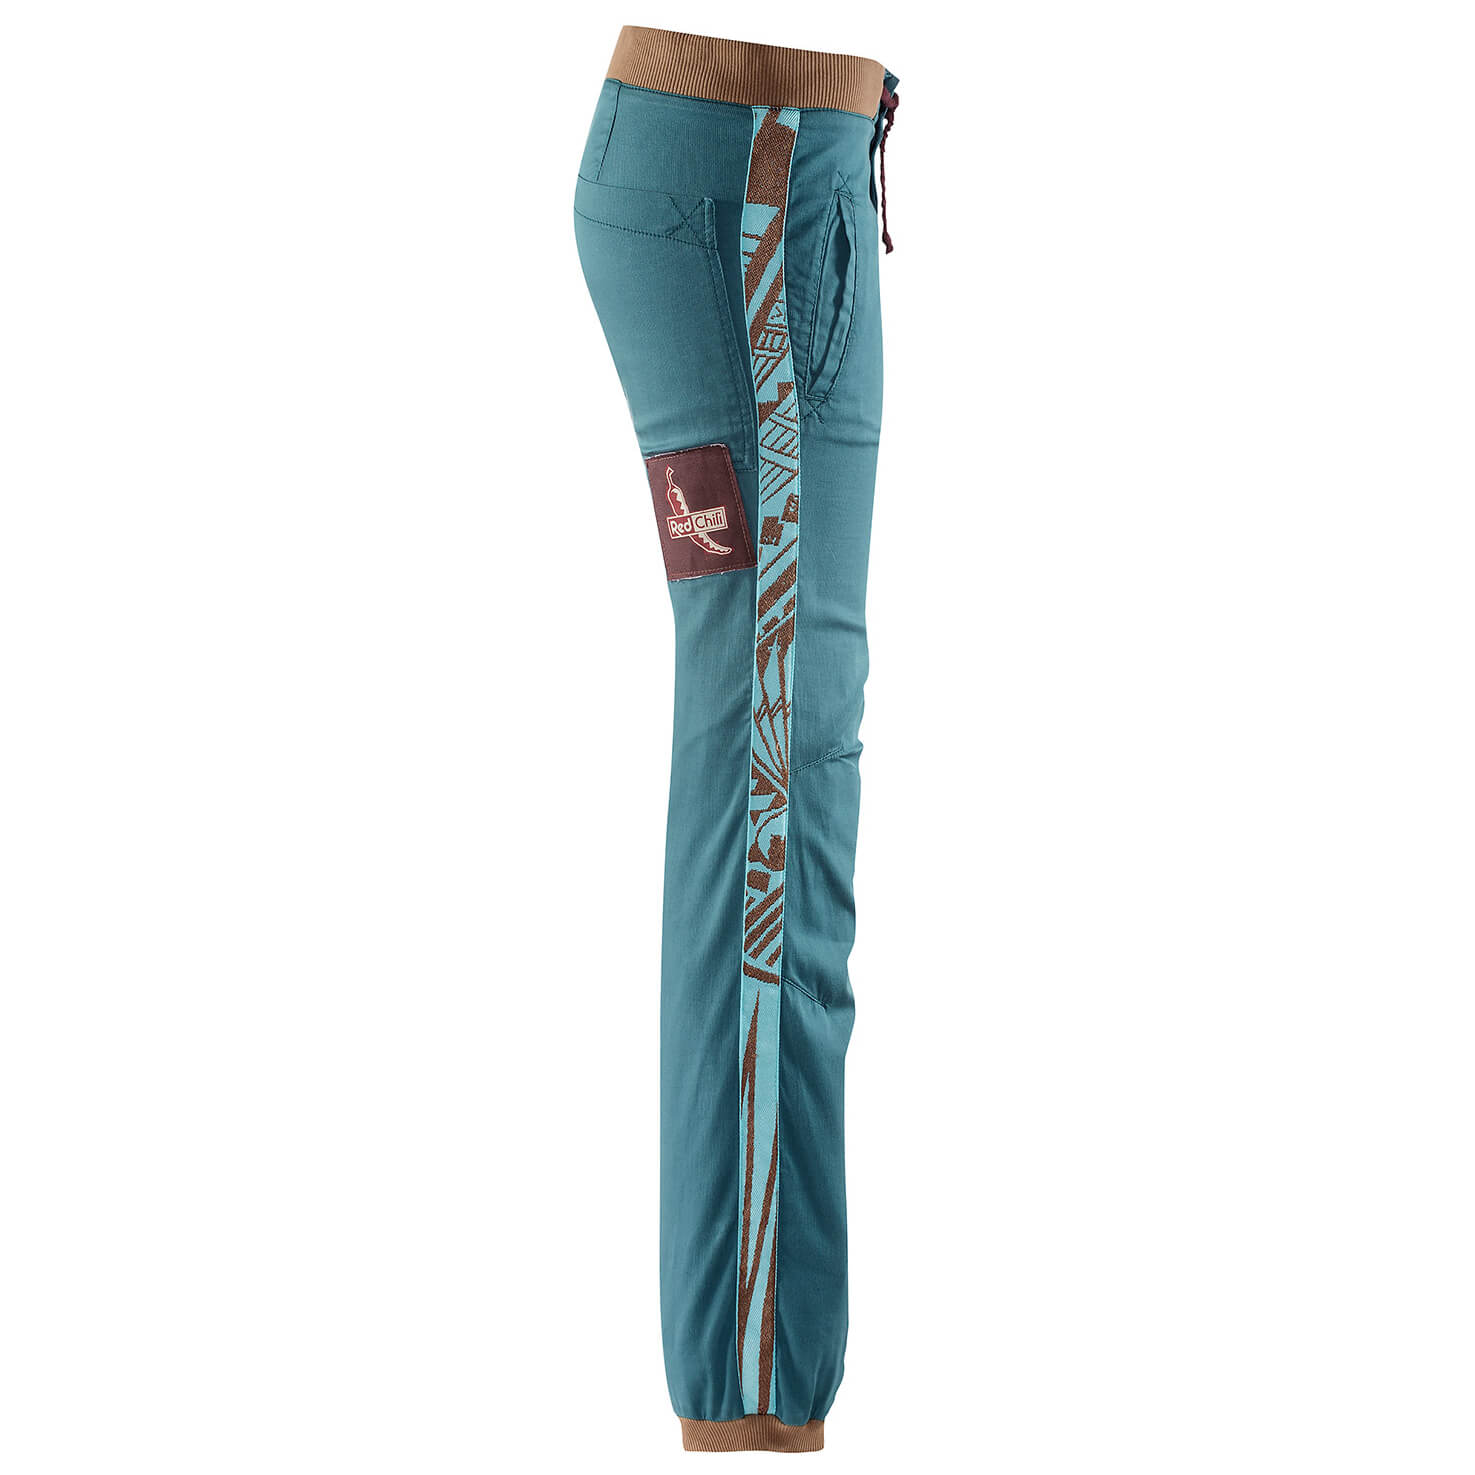 onawa women Onawa by old gringo at 6pm read old gringo onawa product reviews, or select the size, width, and color of your choice.